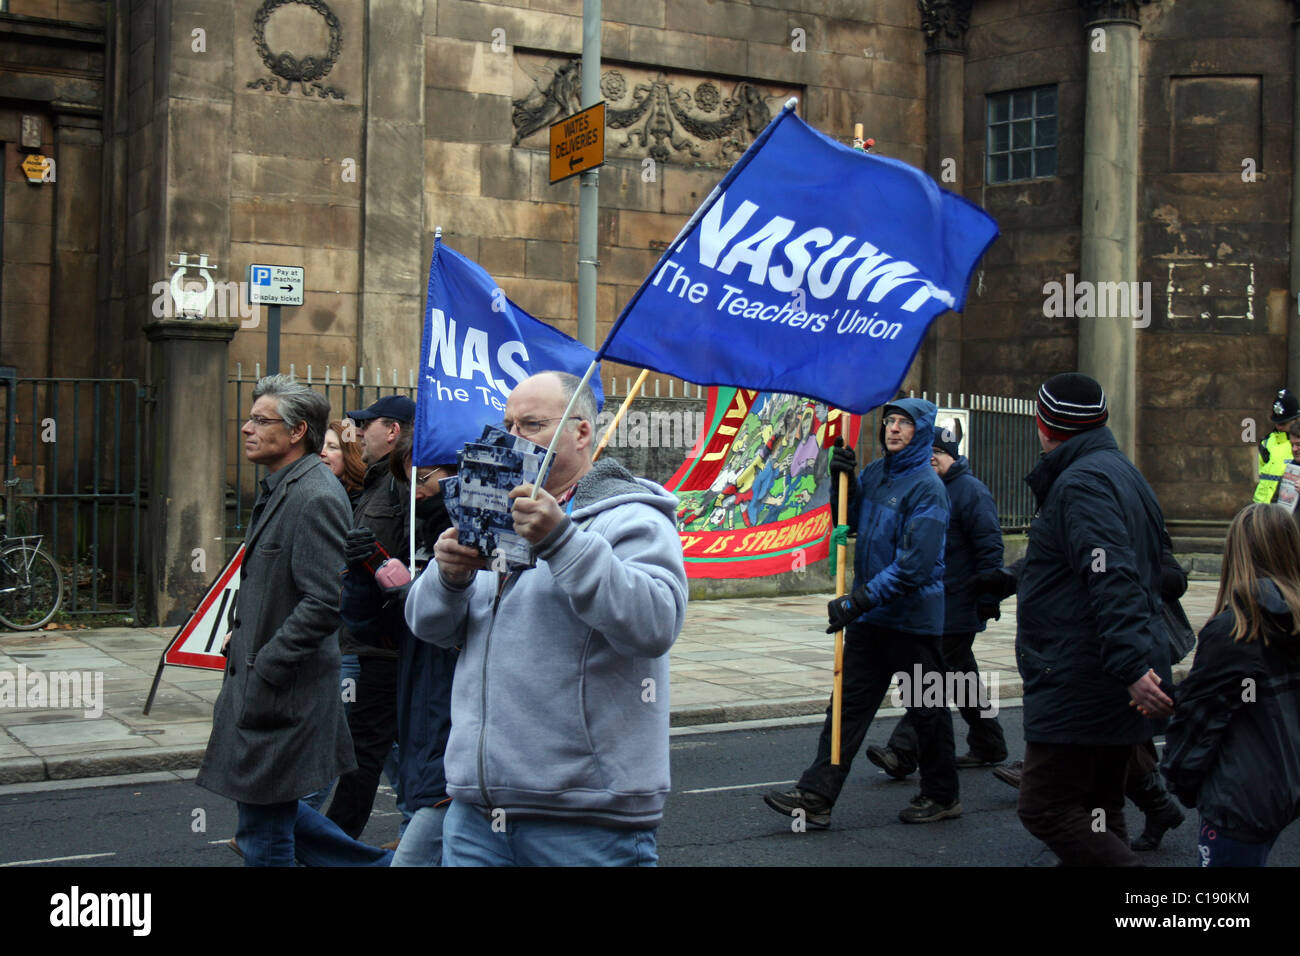 Protesters march against government cuts in Liverpool 11/12/2010 - Stock Image